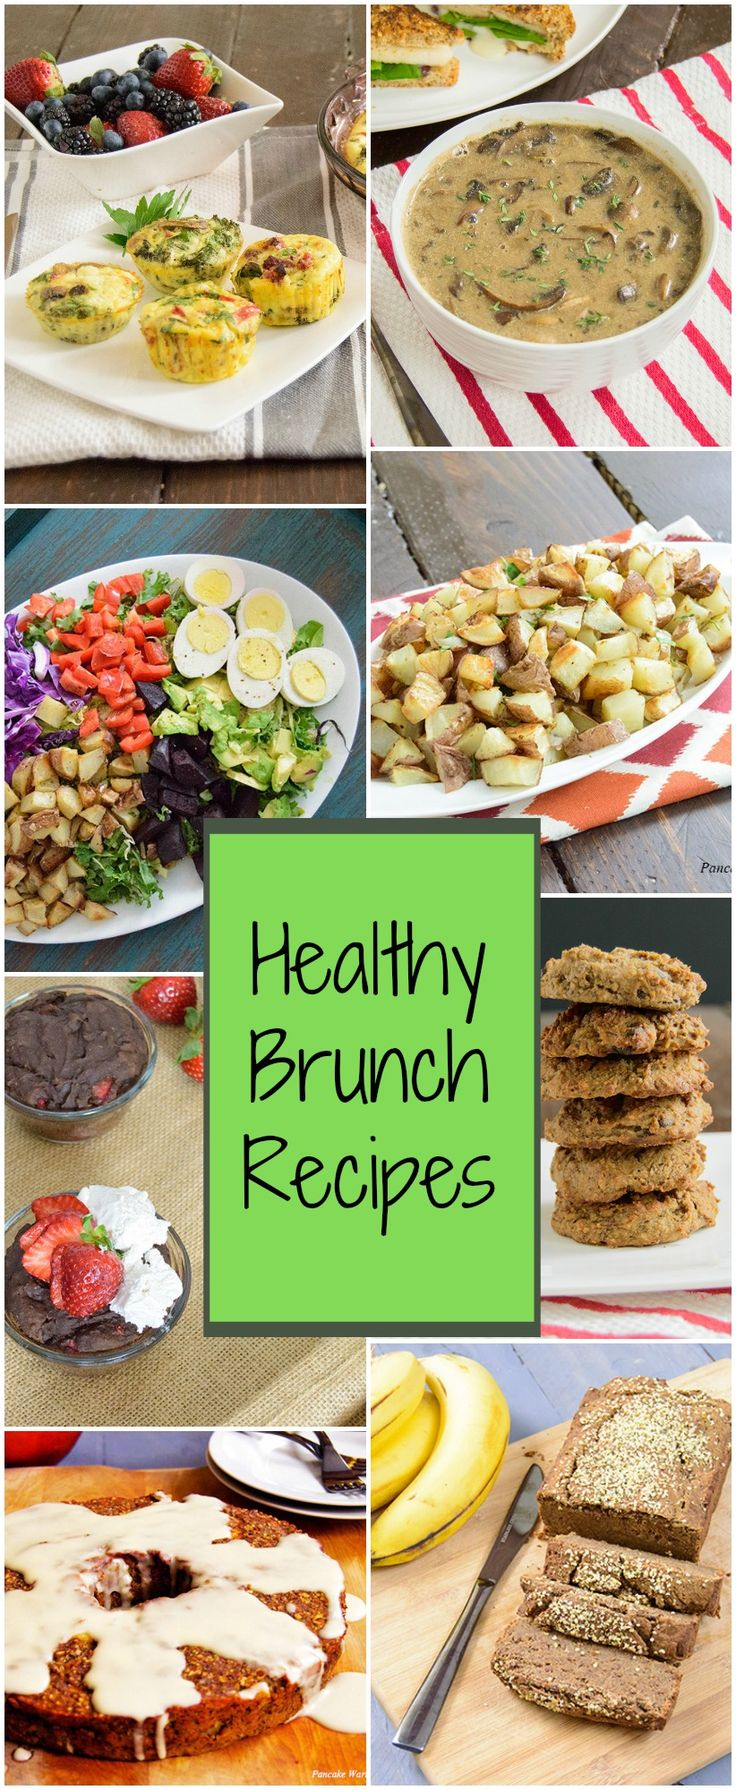 Healthy Brunch Recipes - collection of healthy brunch ideas that you can make ahead for a flawless healthy brunch!